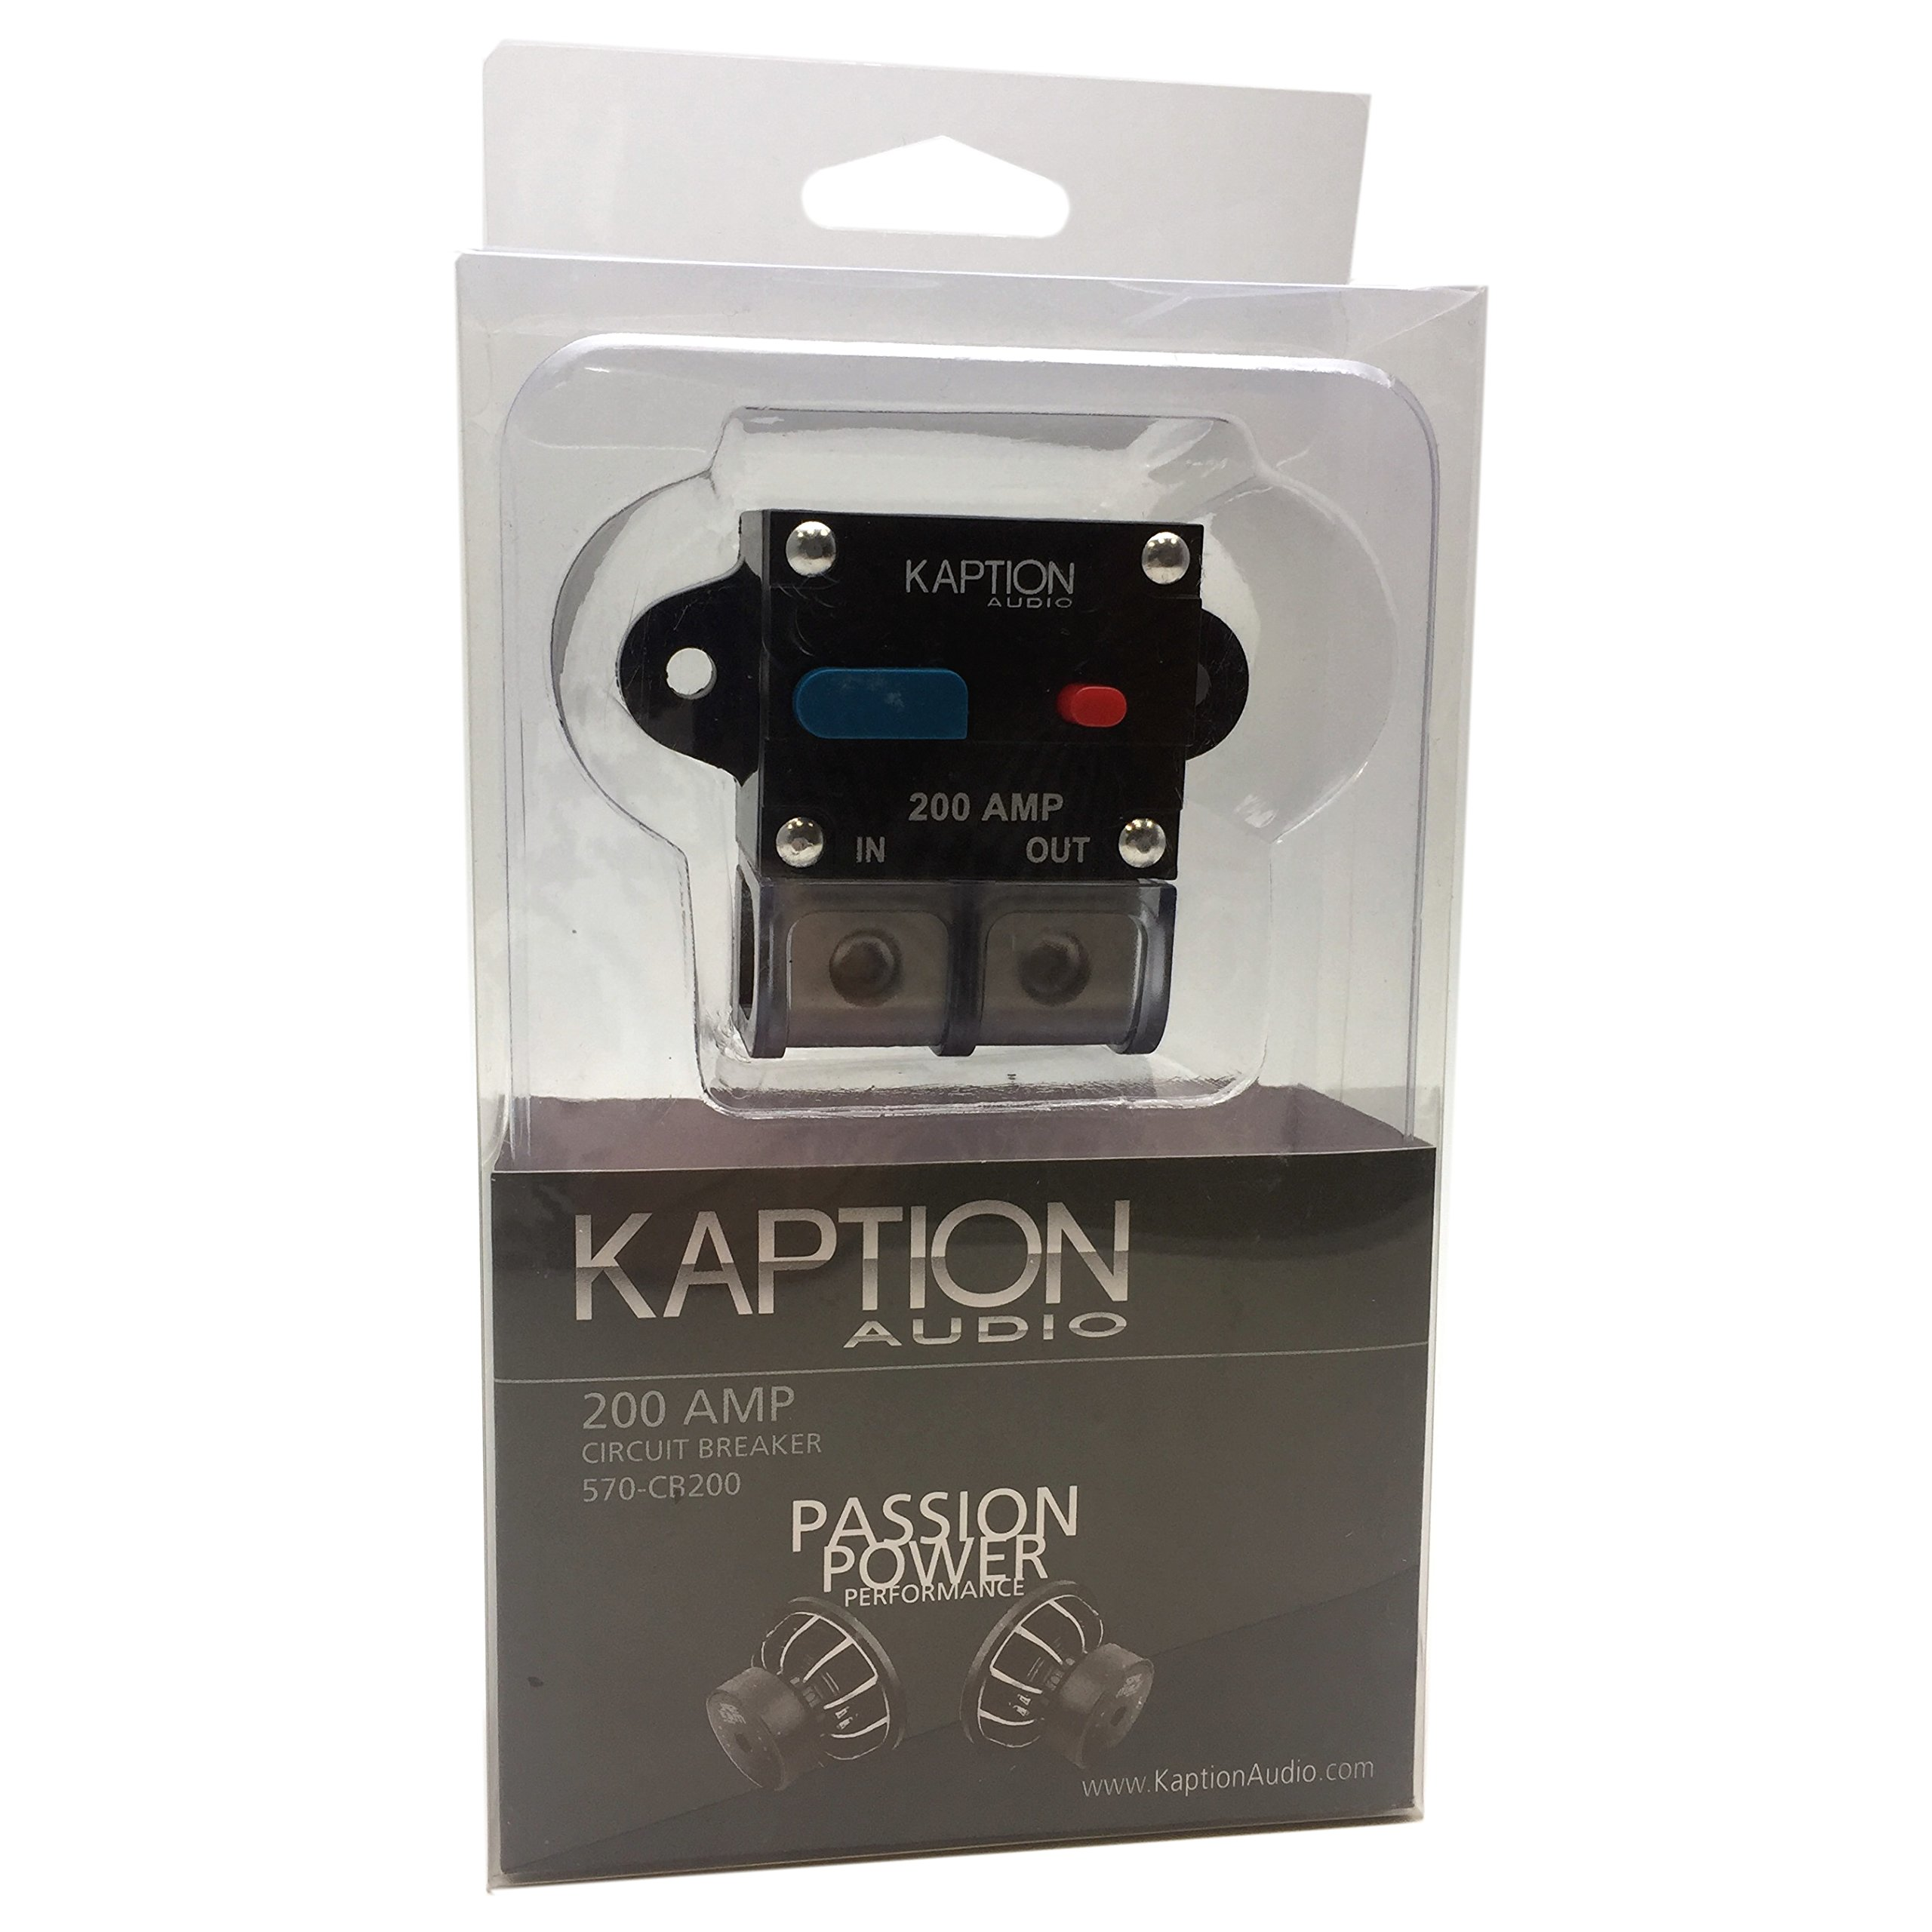 Kaption Audio Circuit Breaker Reset 200 Amp Fuse - 0/4 Ga Gauge AWG - Car Stereo Auto Marine Boat Truck